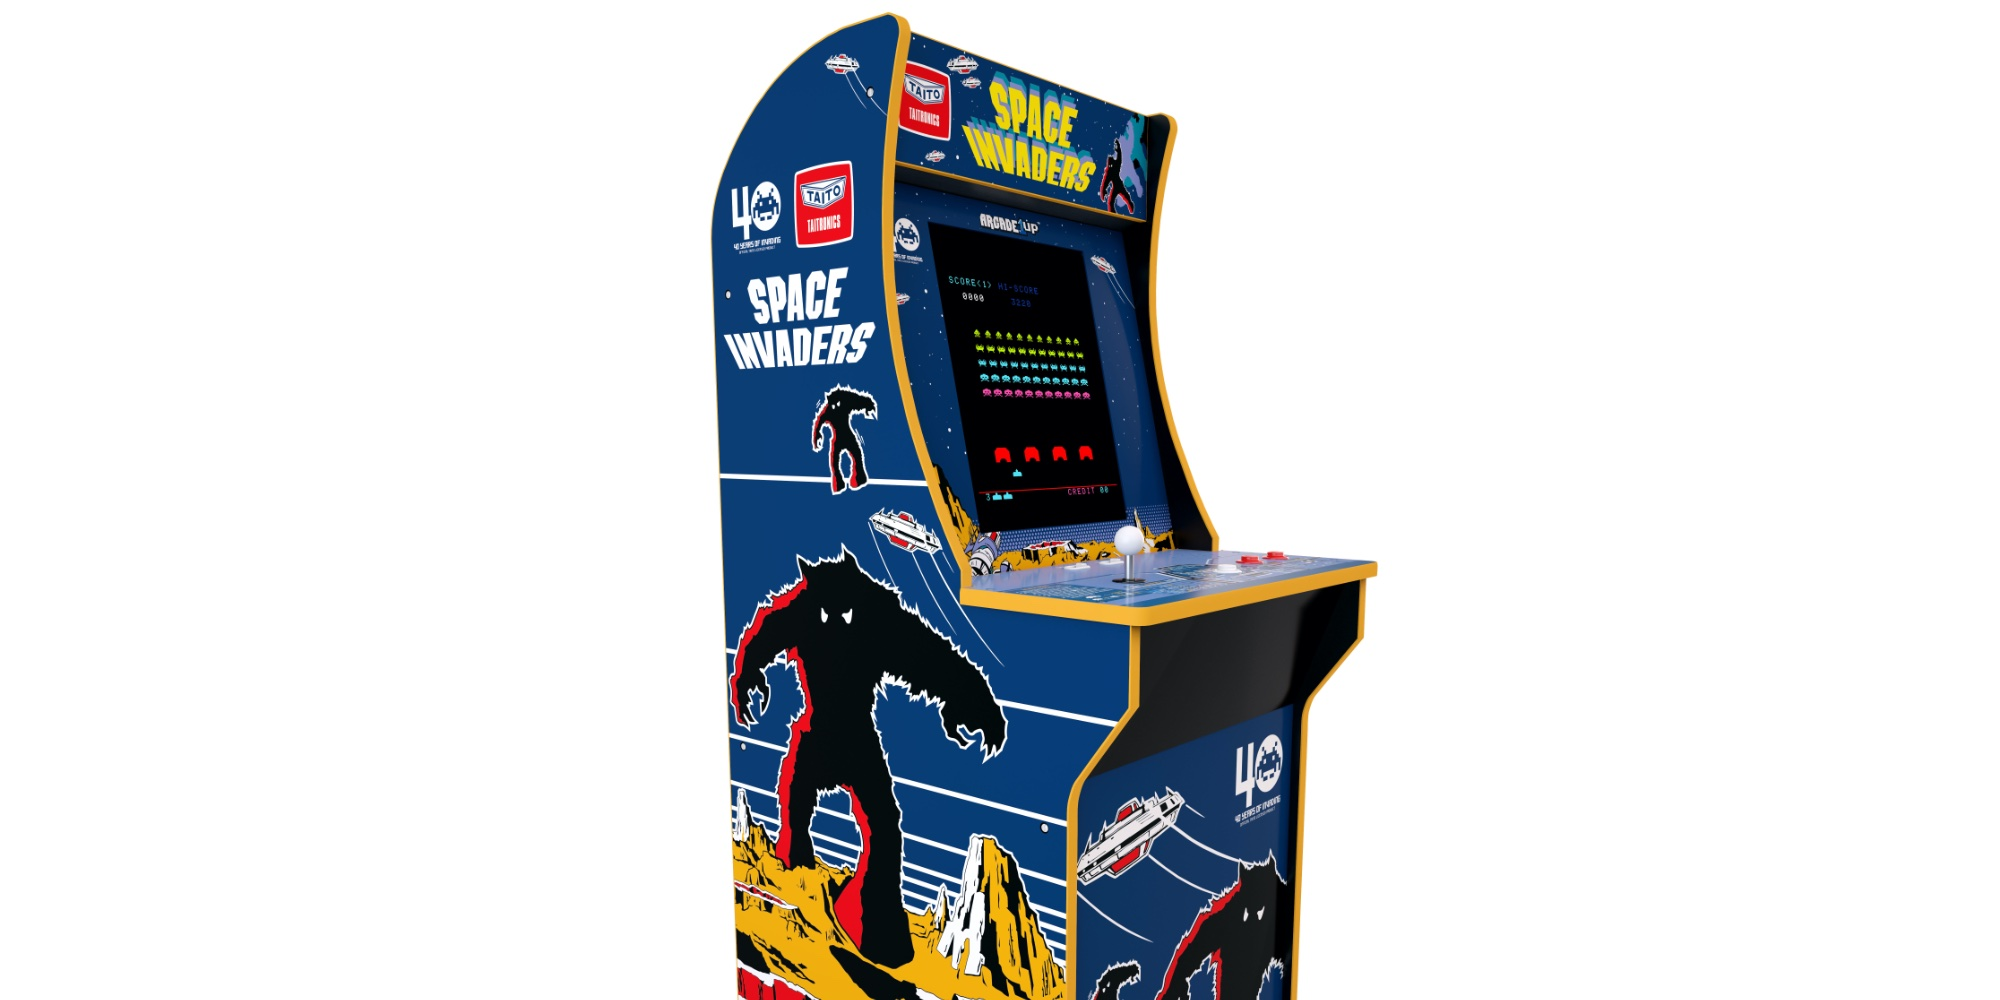 Bring Arcade1up S Space Invaders Cabinet To The Game Room For 150 Save 50 9to5toys